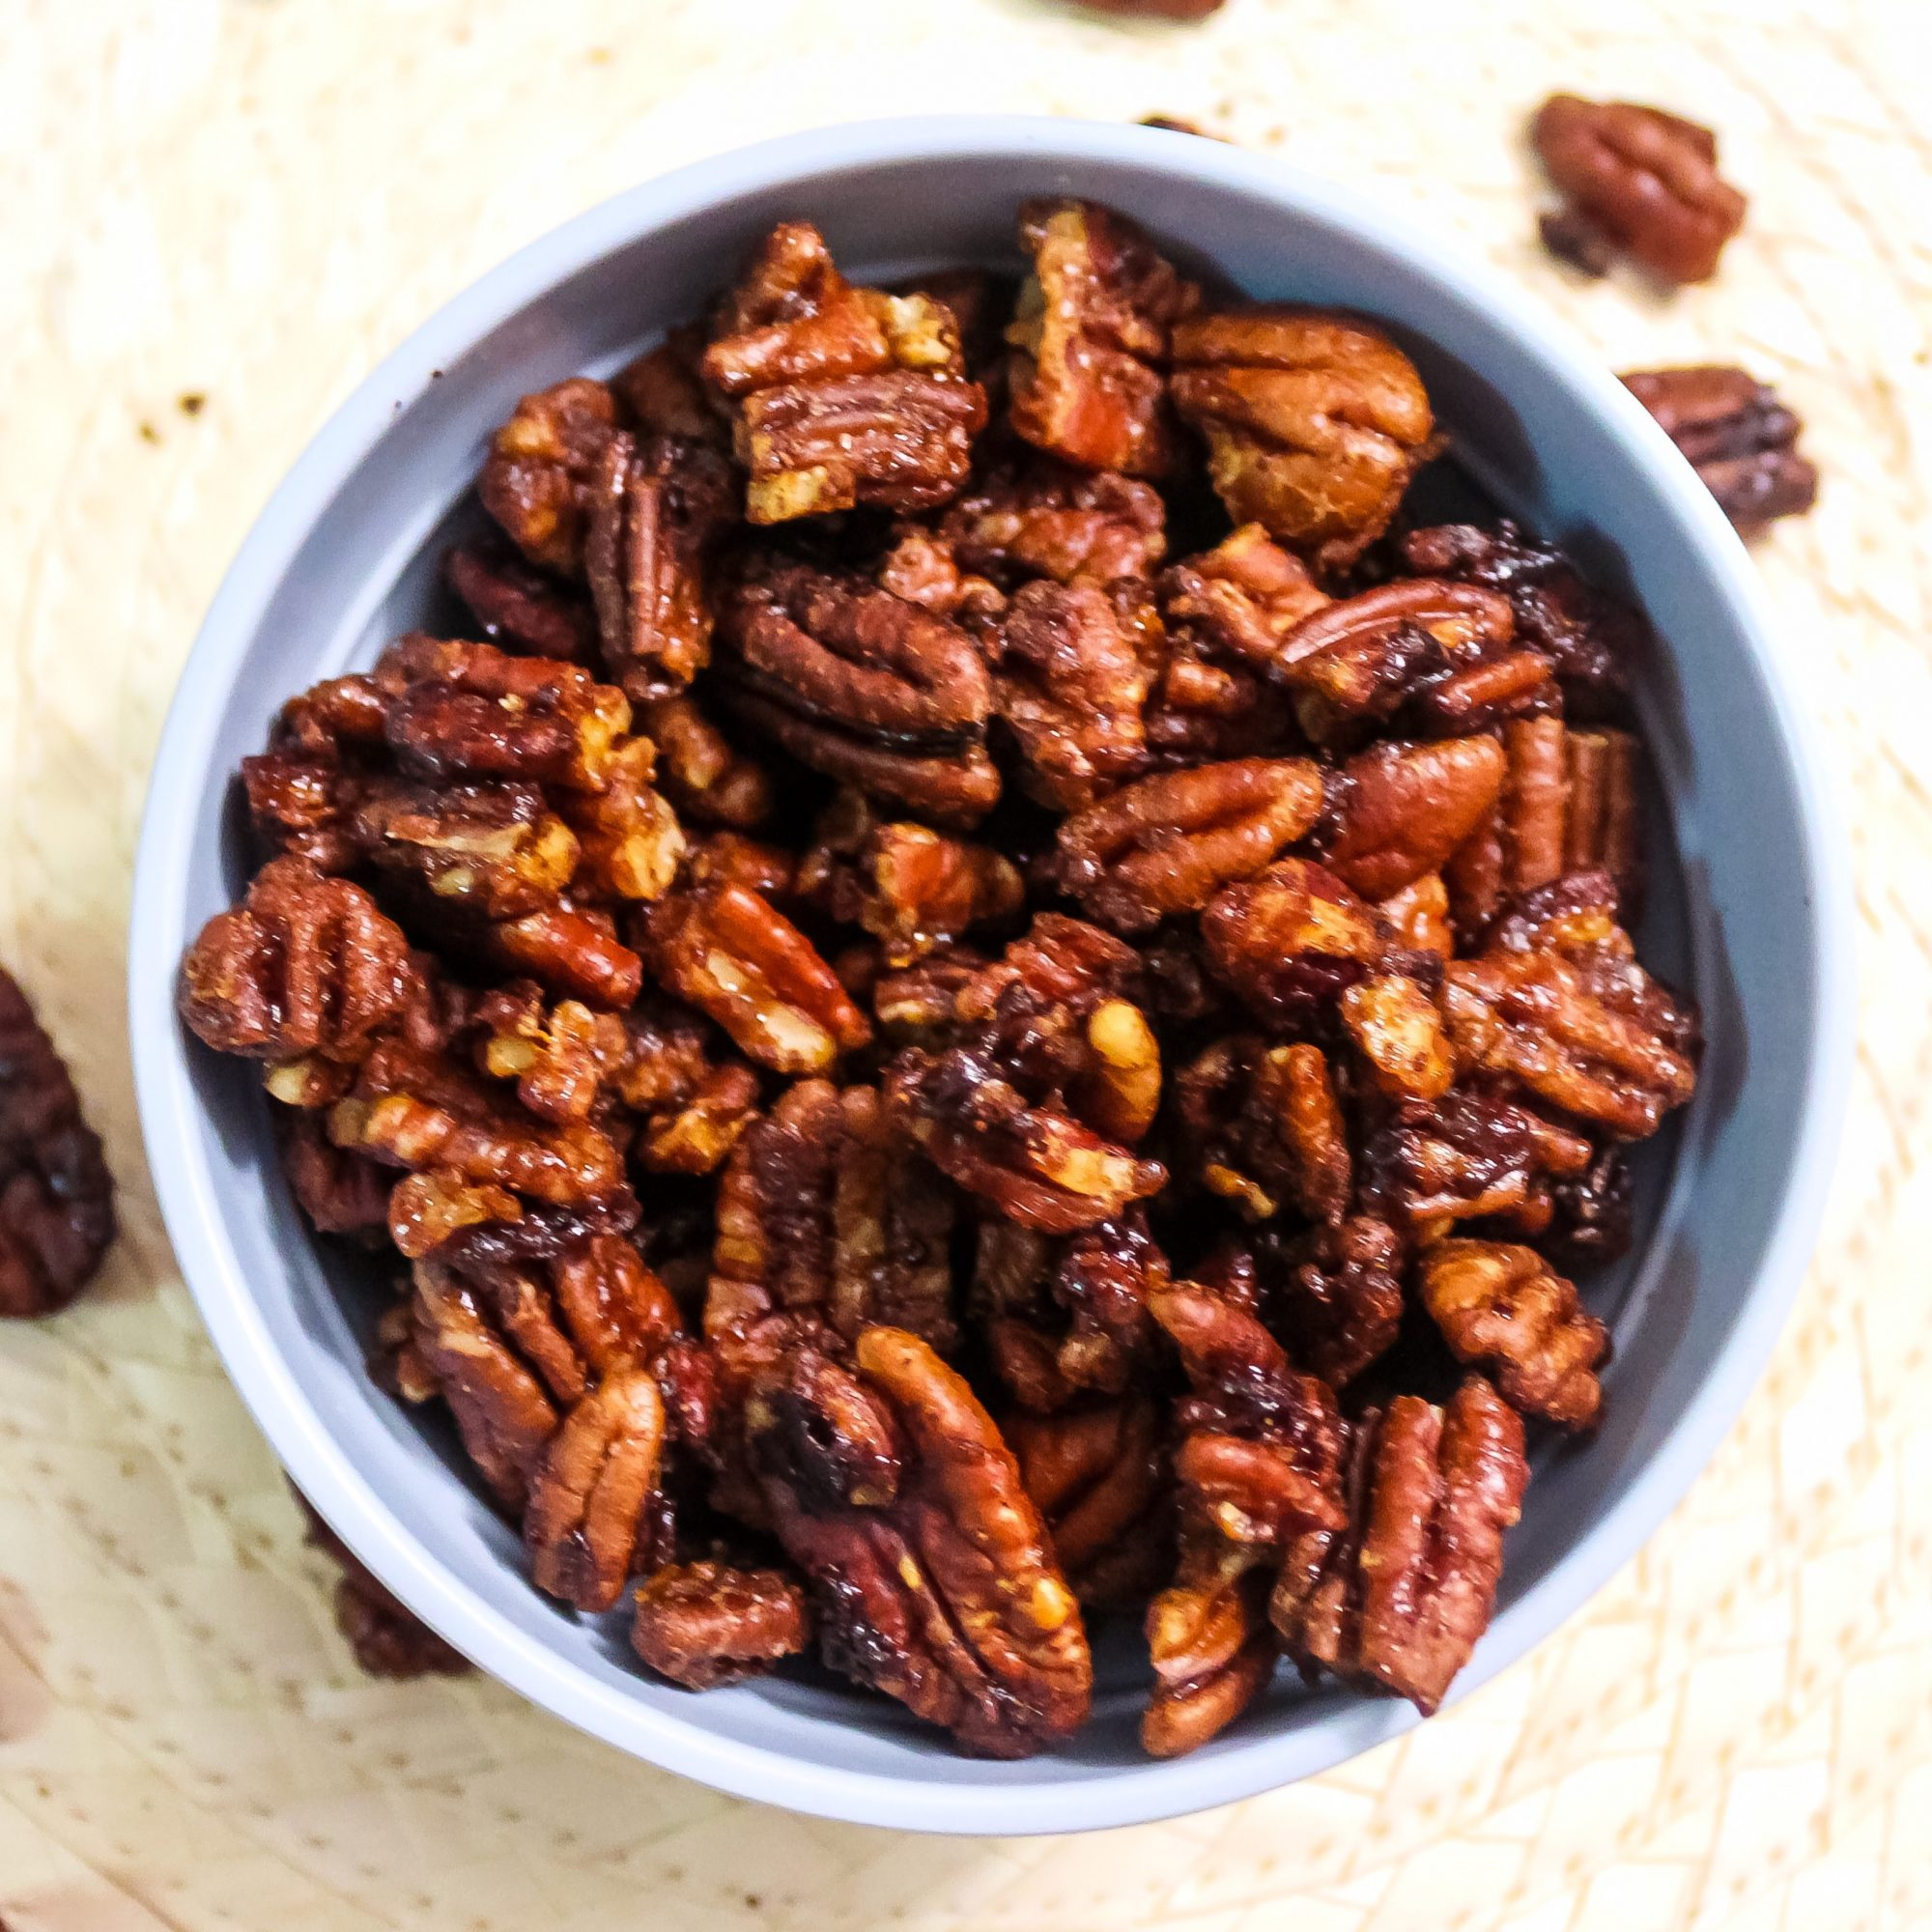 Microwave Spiced Nuts in a bowl